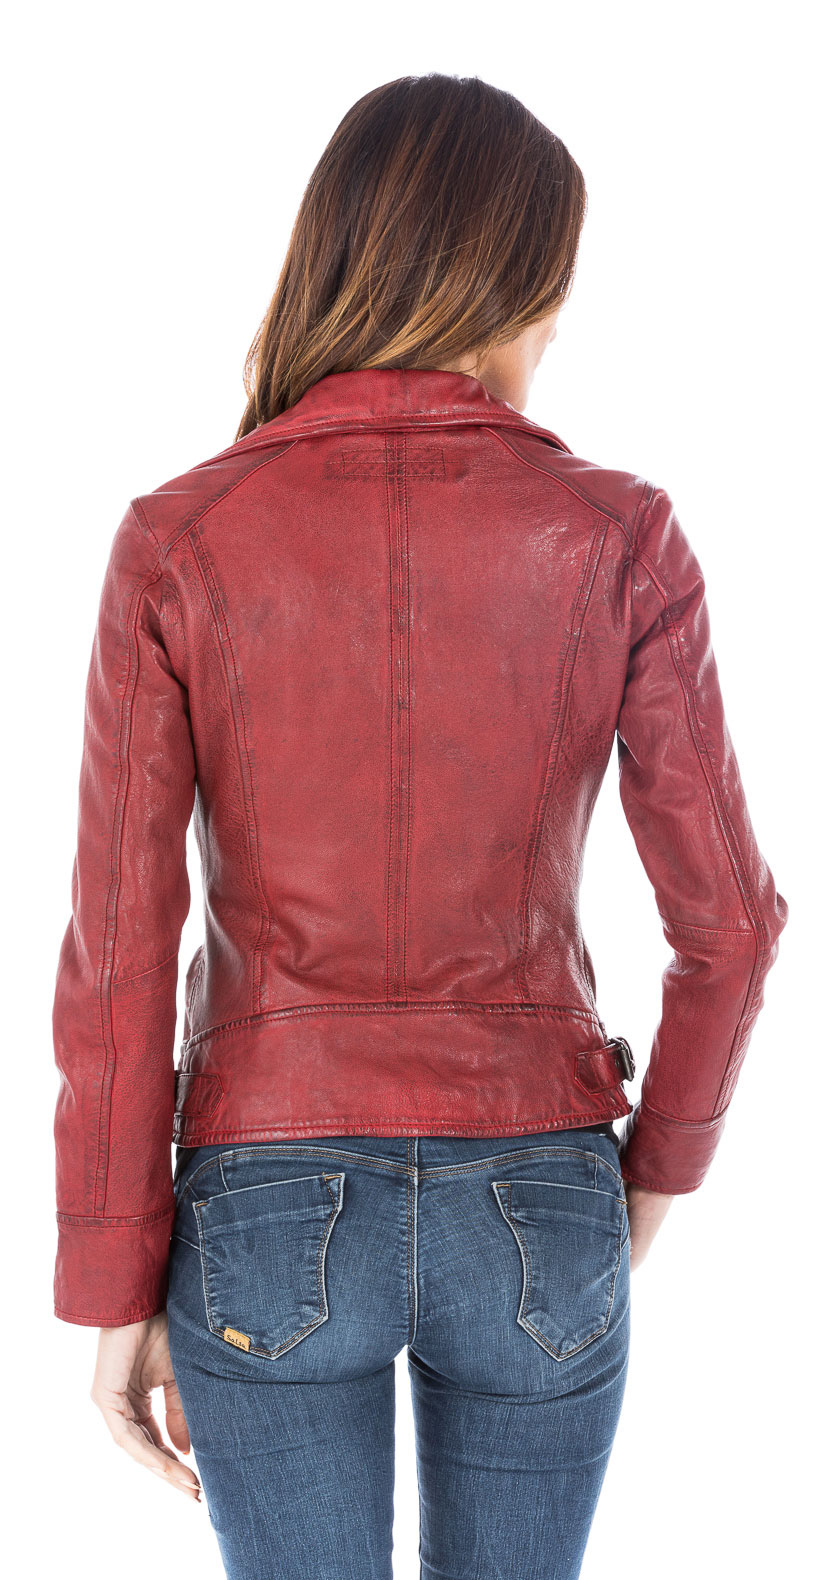 Leather jackets OAKWOOD of leather agneau-ref 62065 video-fire f6d9f7be78d